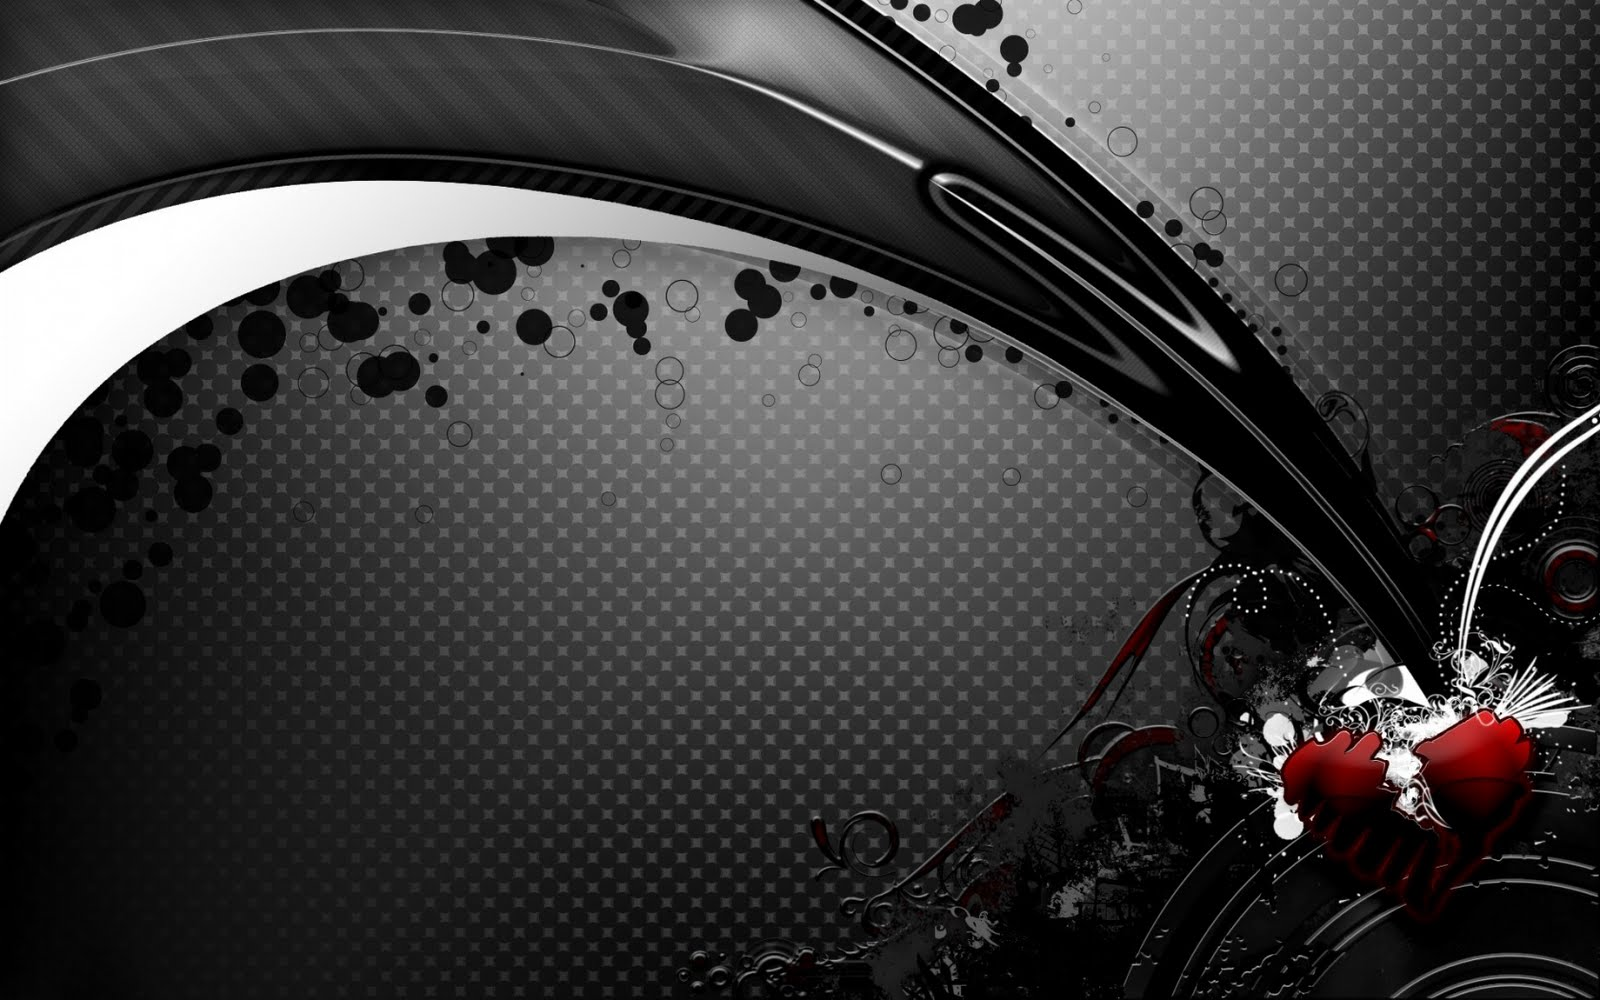 Black Solid Color Backgrounds Black Backgrounds hd Solid Red